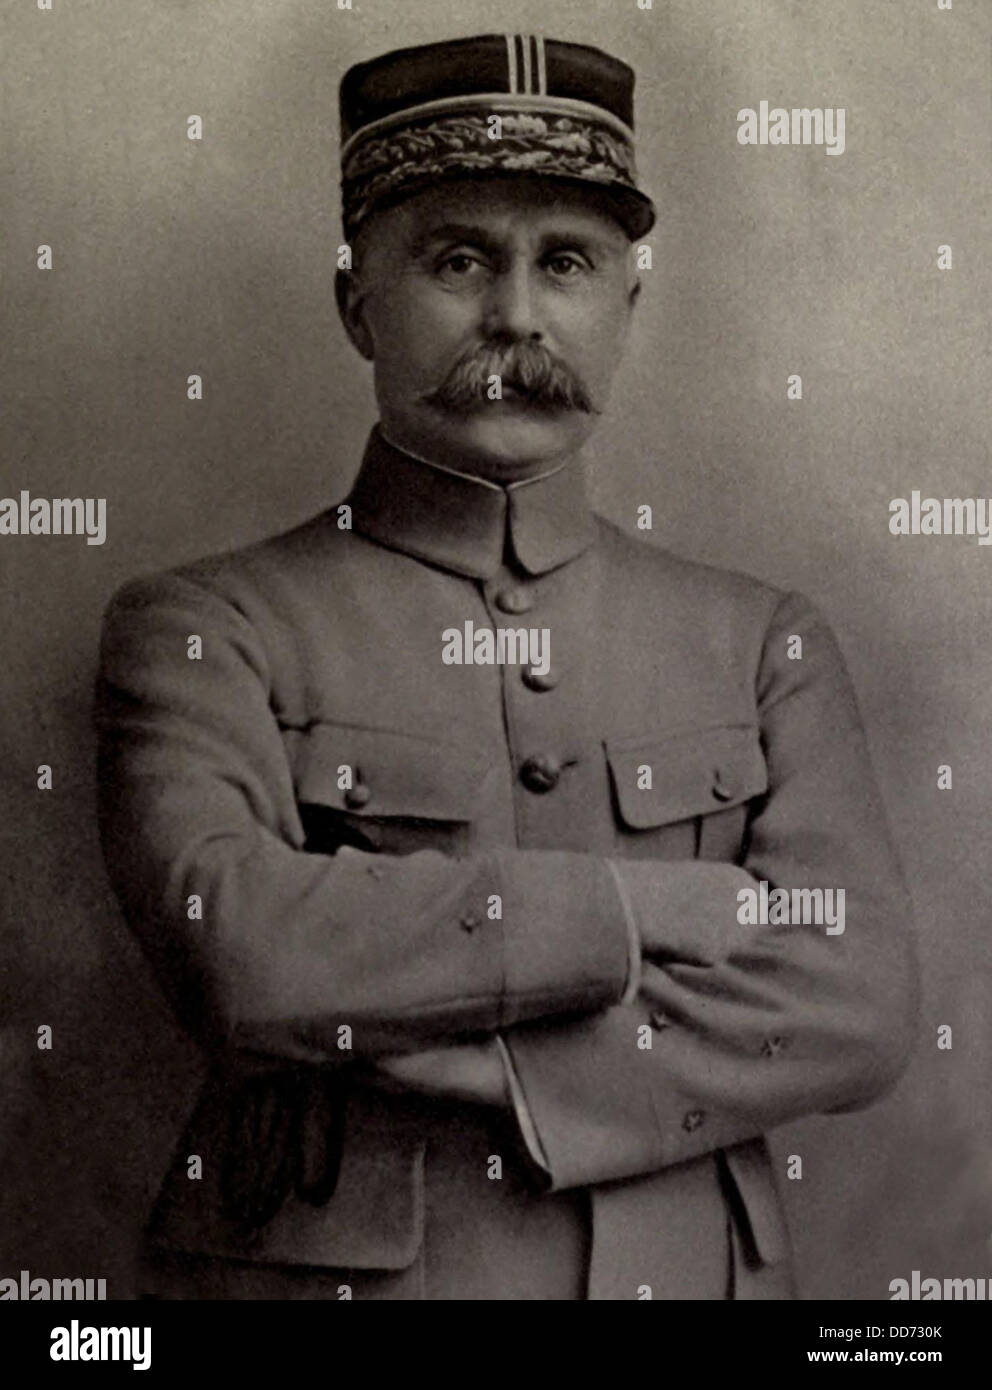 General Henri-Philippe Petain, French World War 1 commander who directed the successful defense of Verdun in 1916. - Stock Image